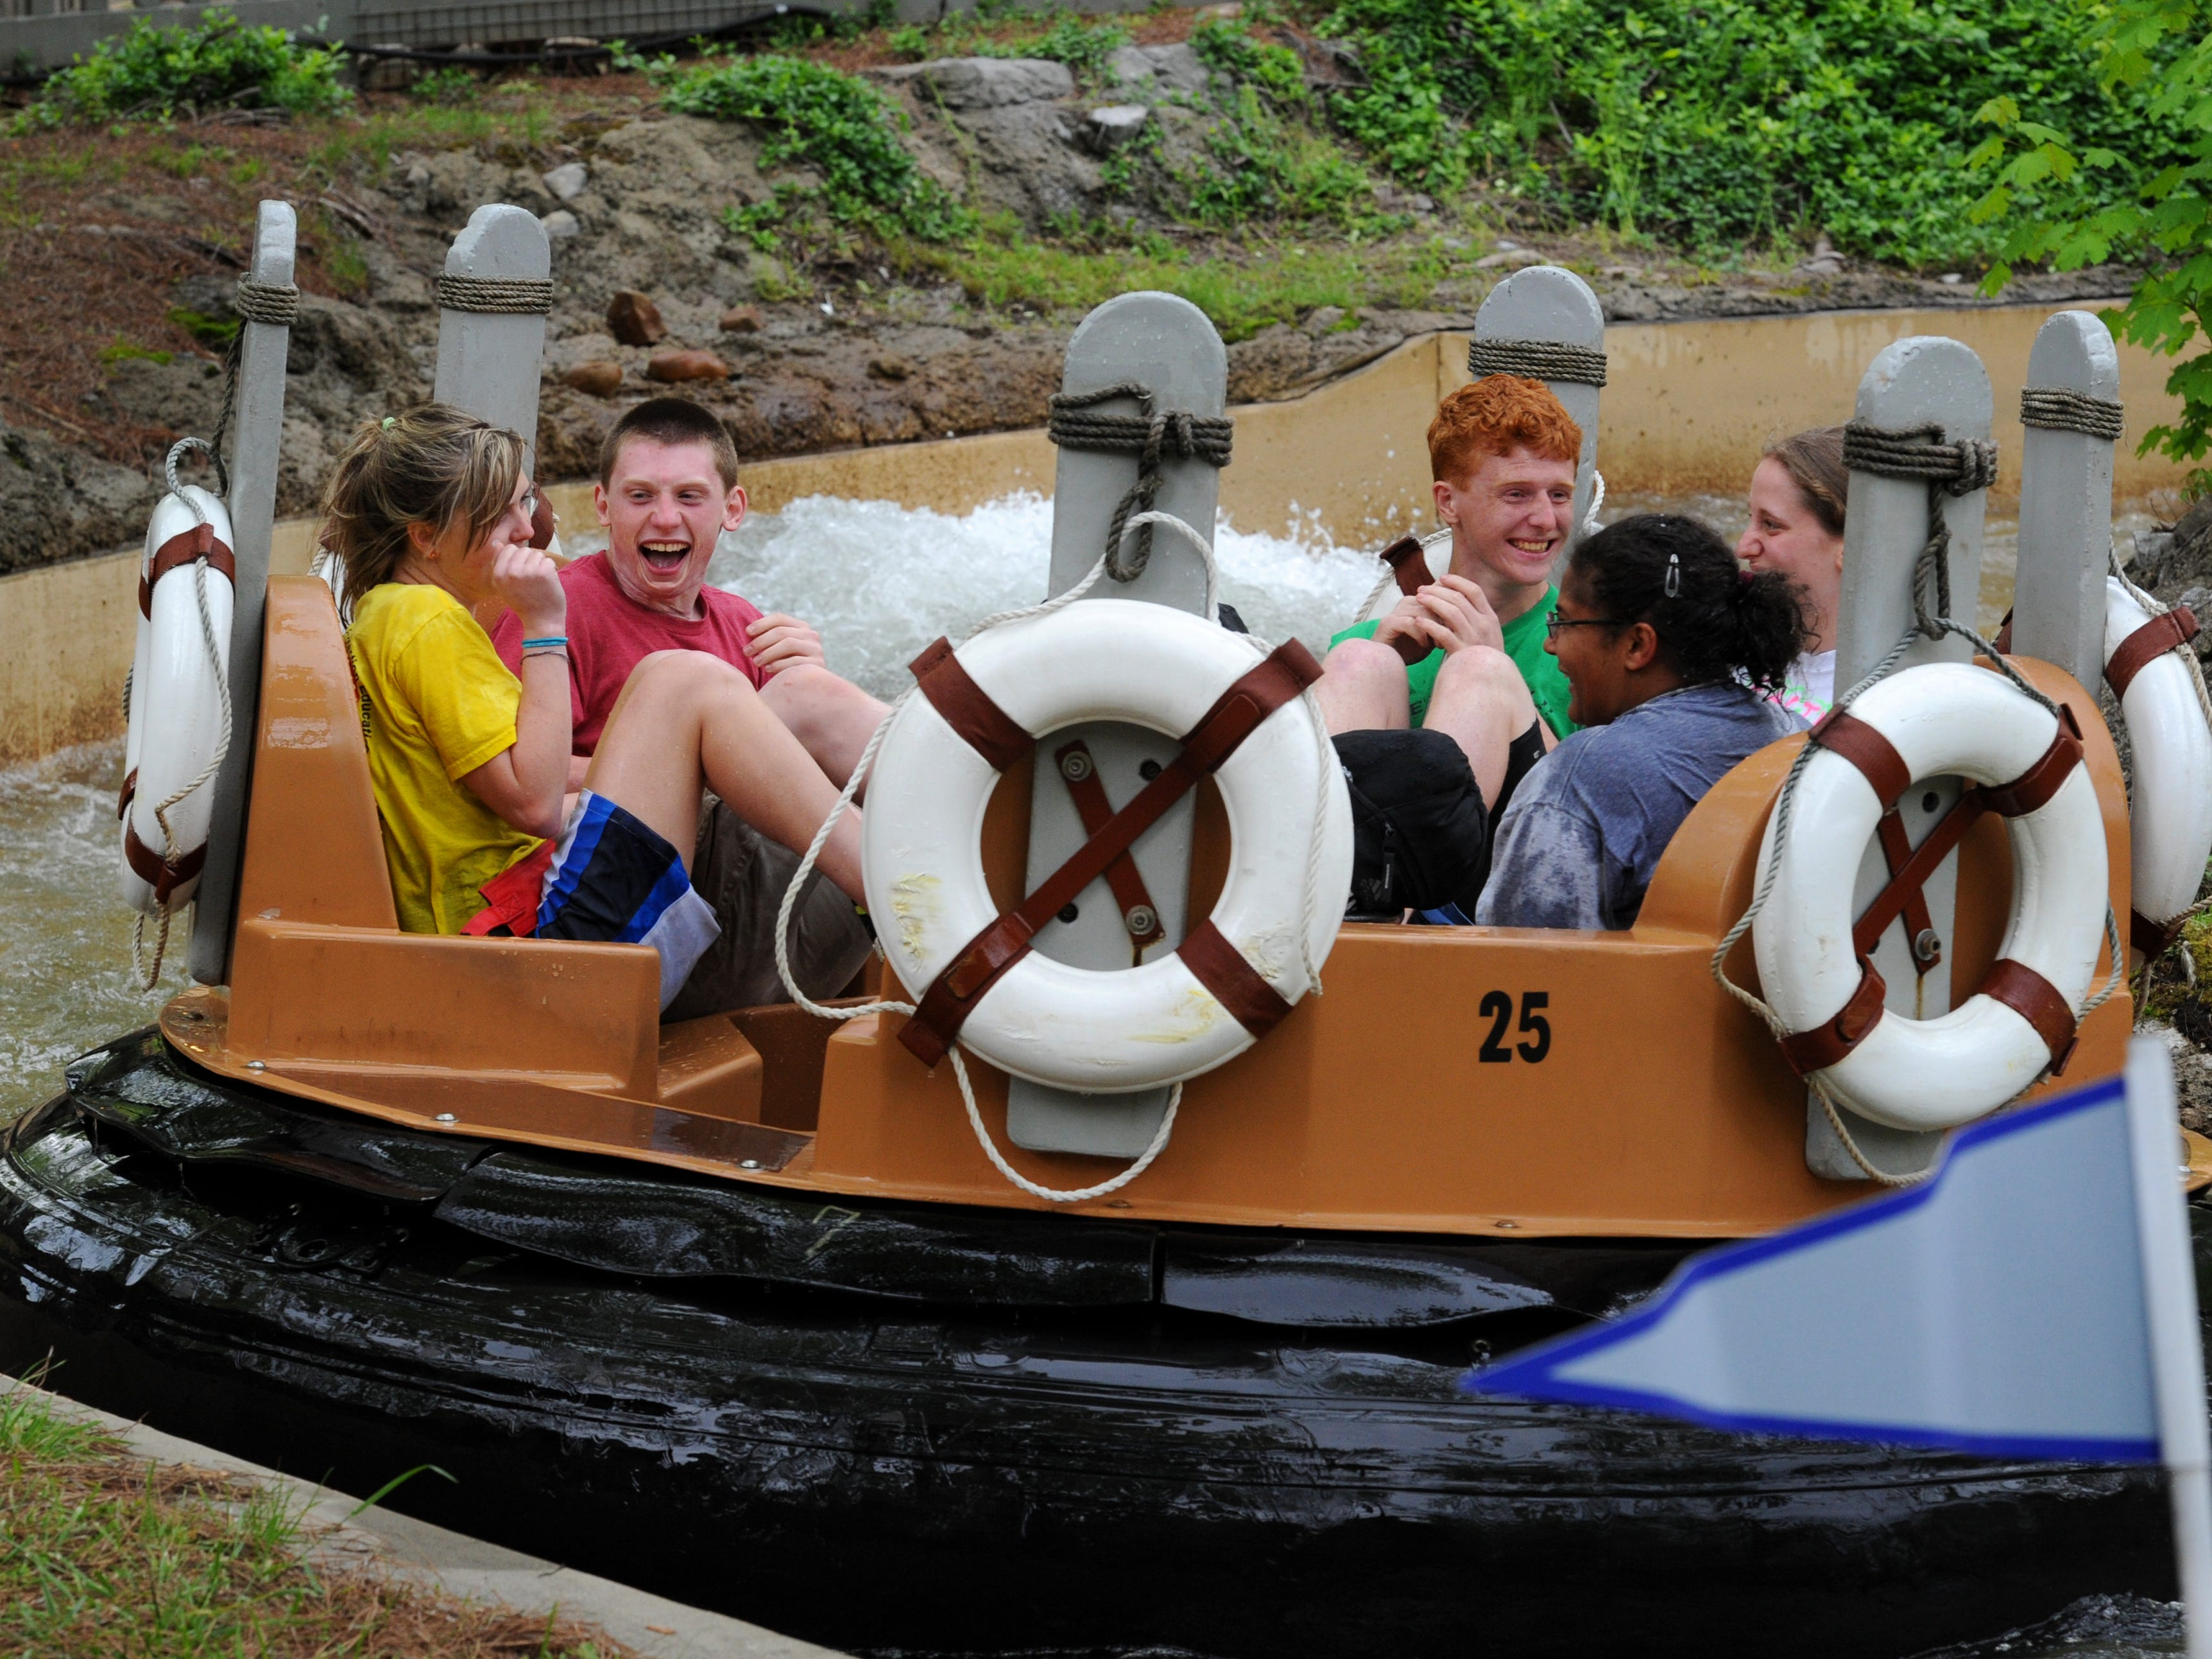 Kids enjoying the Smoky Mountain River Rampage at Dollywood during their 30th anniversary Wednesday, Apr. 22, 2015.